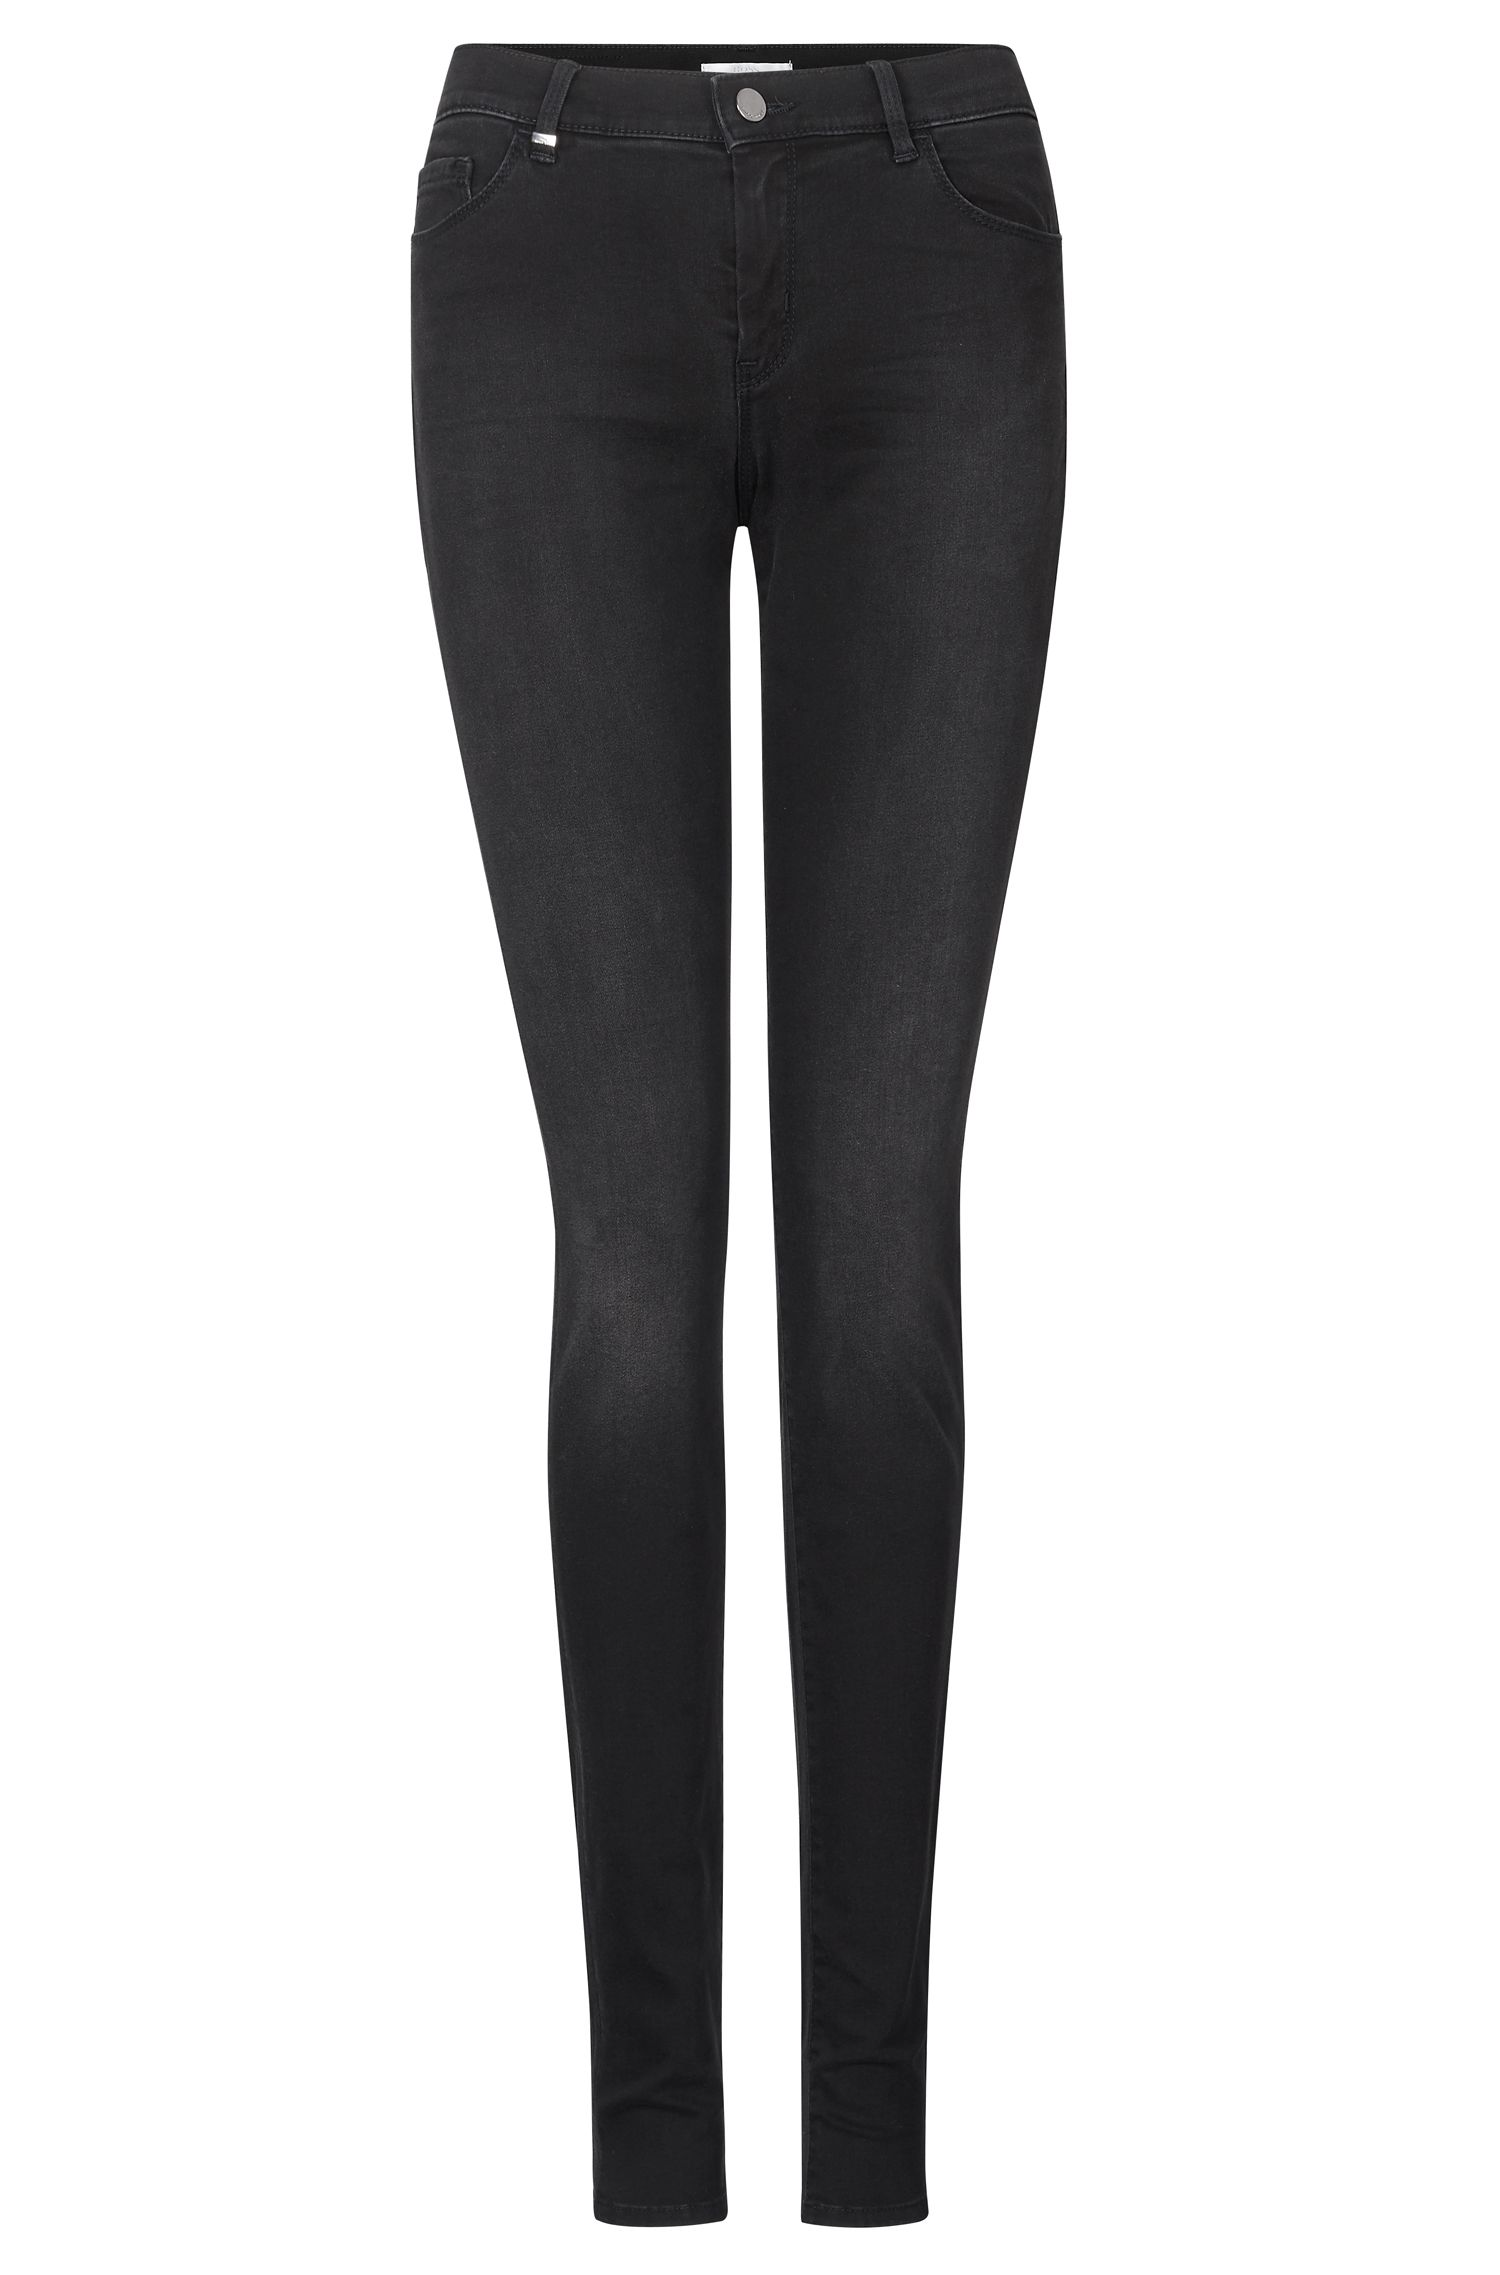 'Nalina' | Stretch Cotton Blend Mid-Rise Jeans